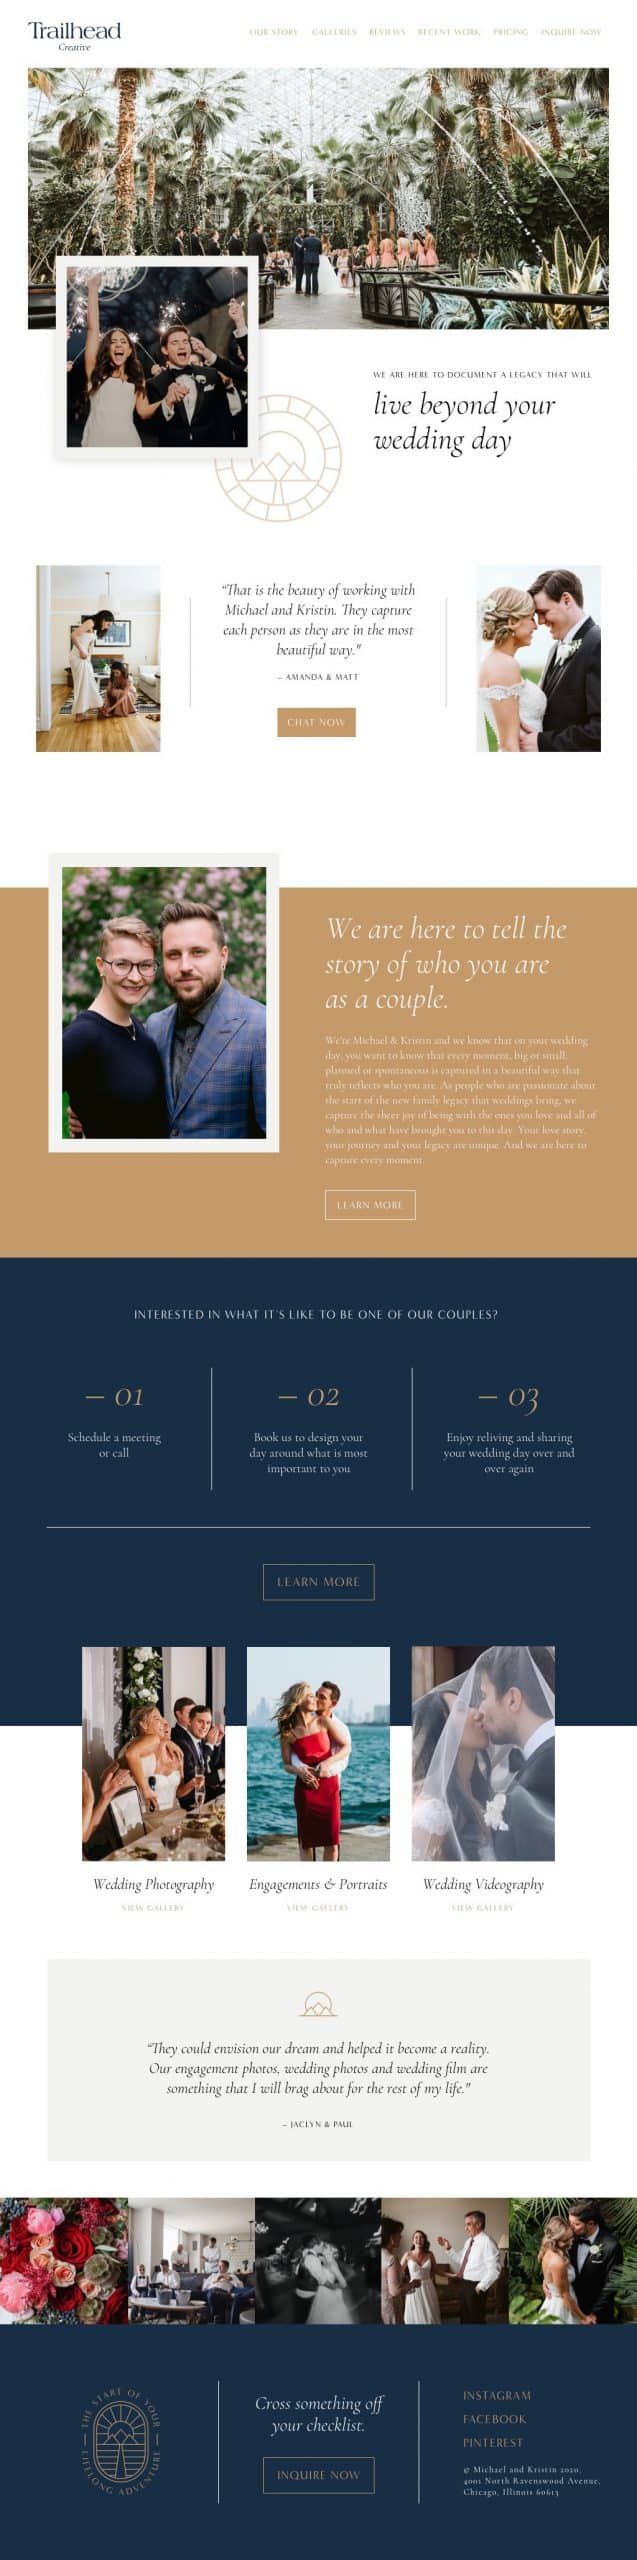 Homepage website design for wedding photography studio, Trailhead Creative